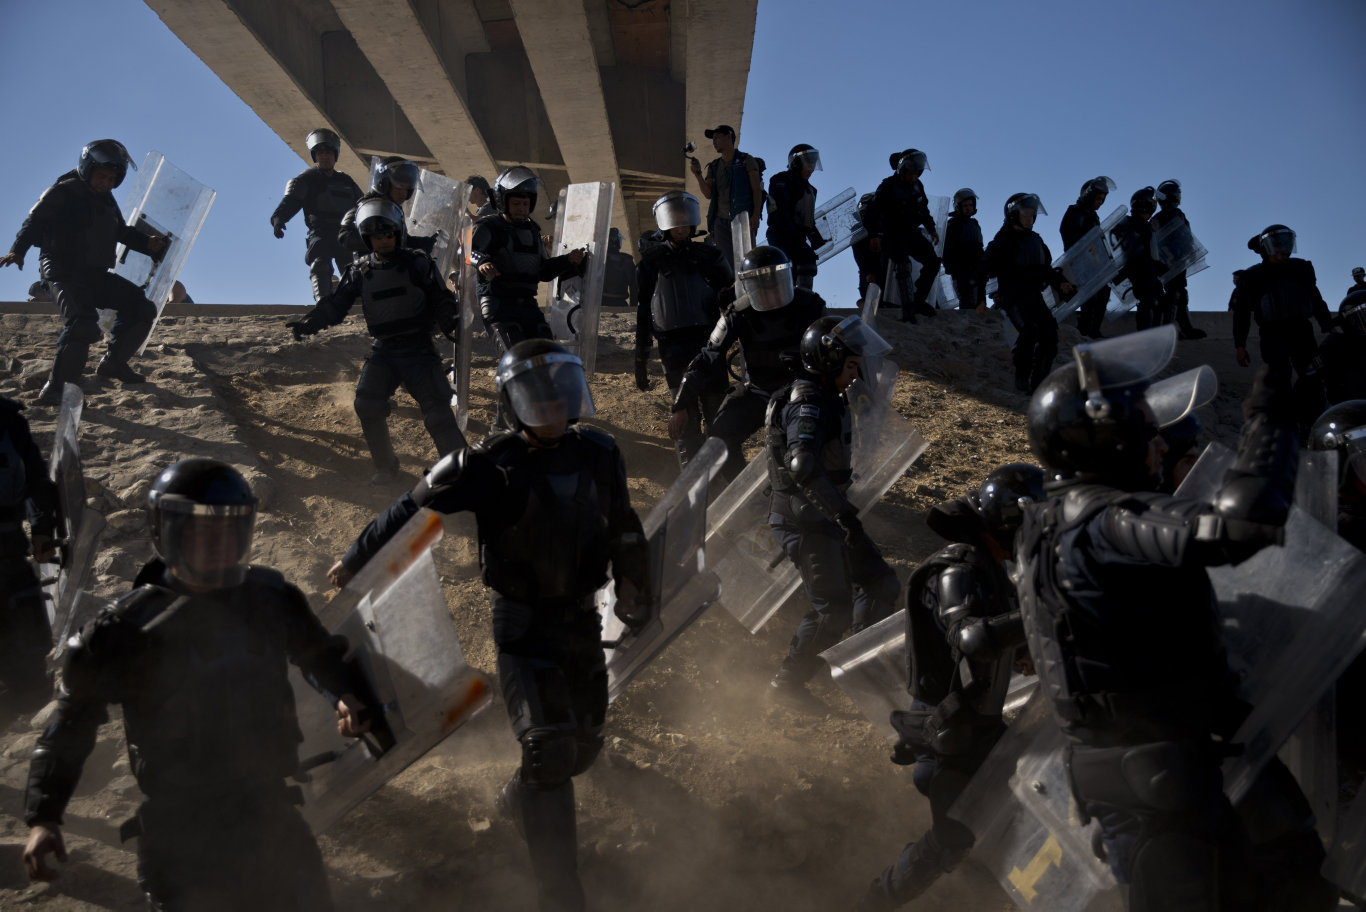 Mexican police run as they try to keep migrants from getting past the Chaparral border crossing in Tijuana, Mexico, near San Ysidro, California.